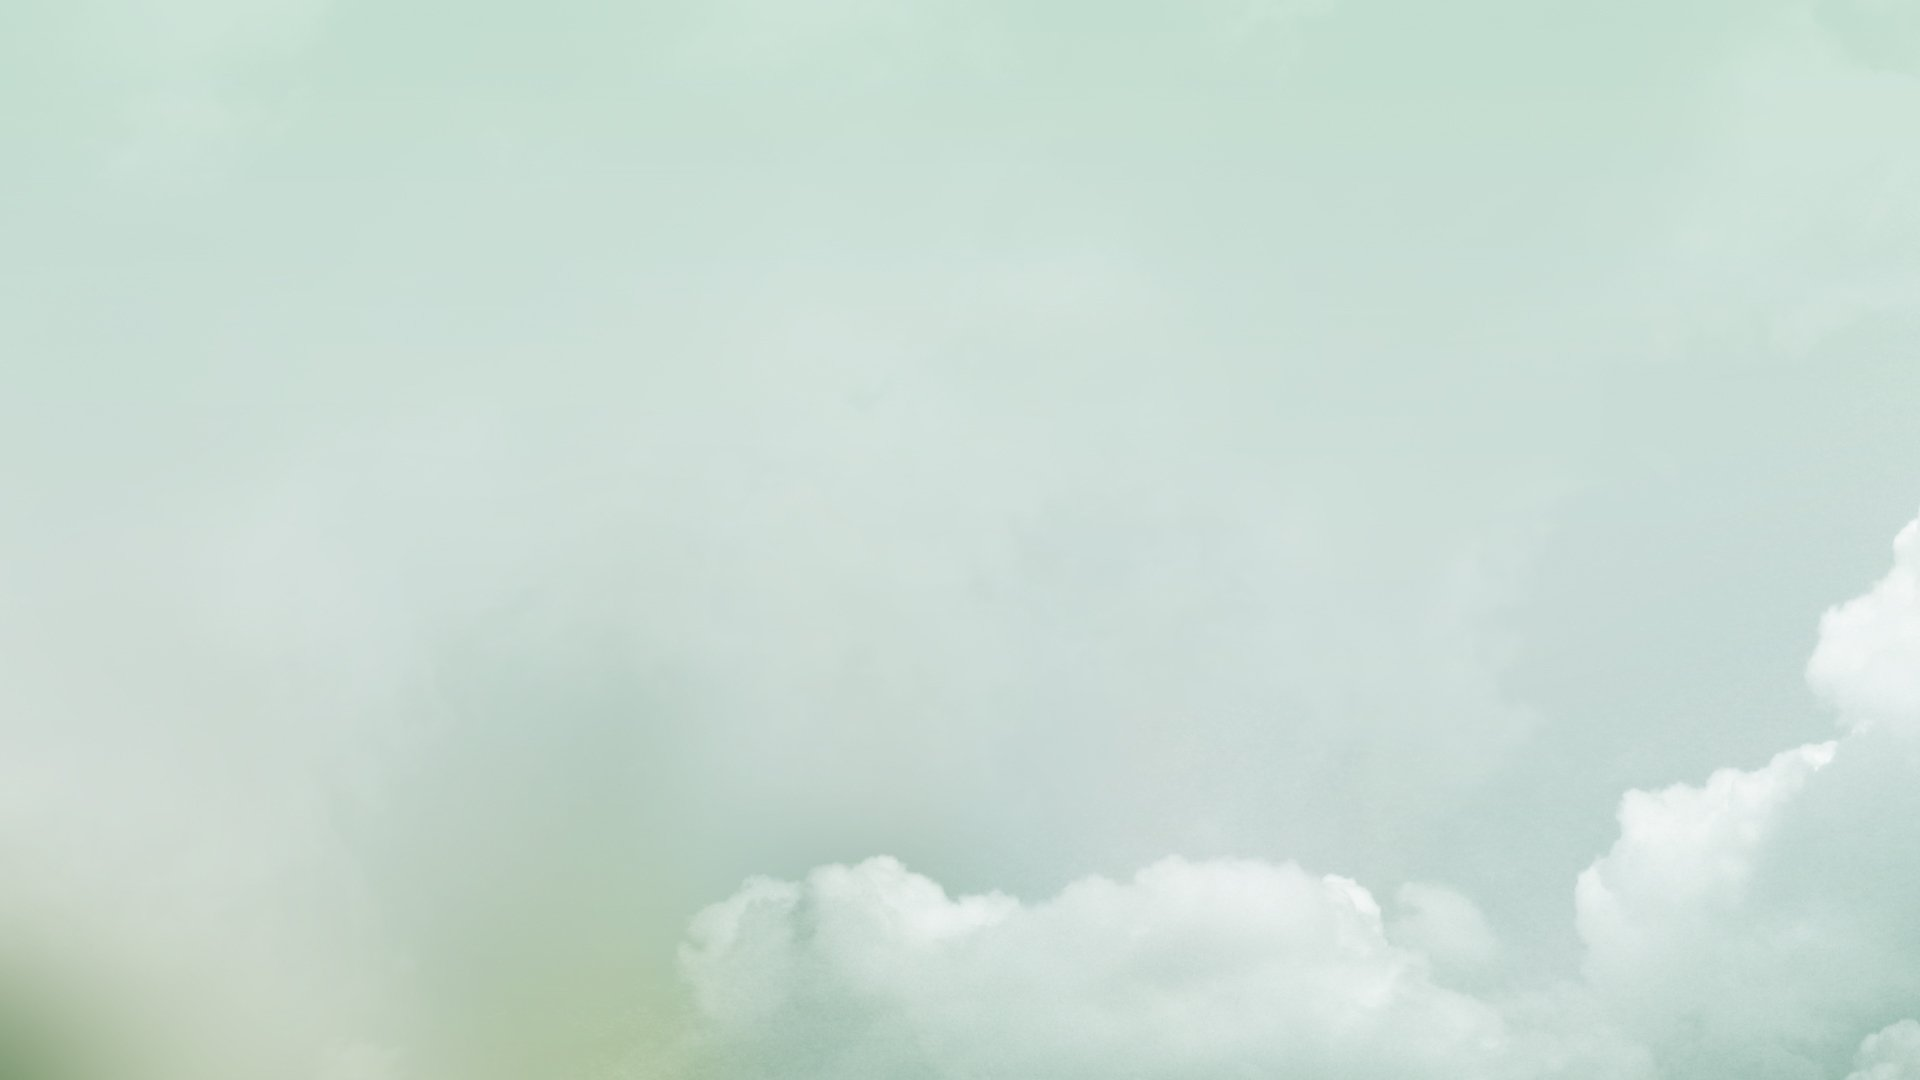 Minimal clouds World 1920x1080 highreshdwallpaperscom 1920x1080